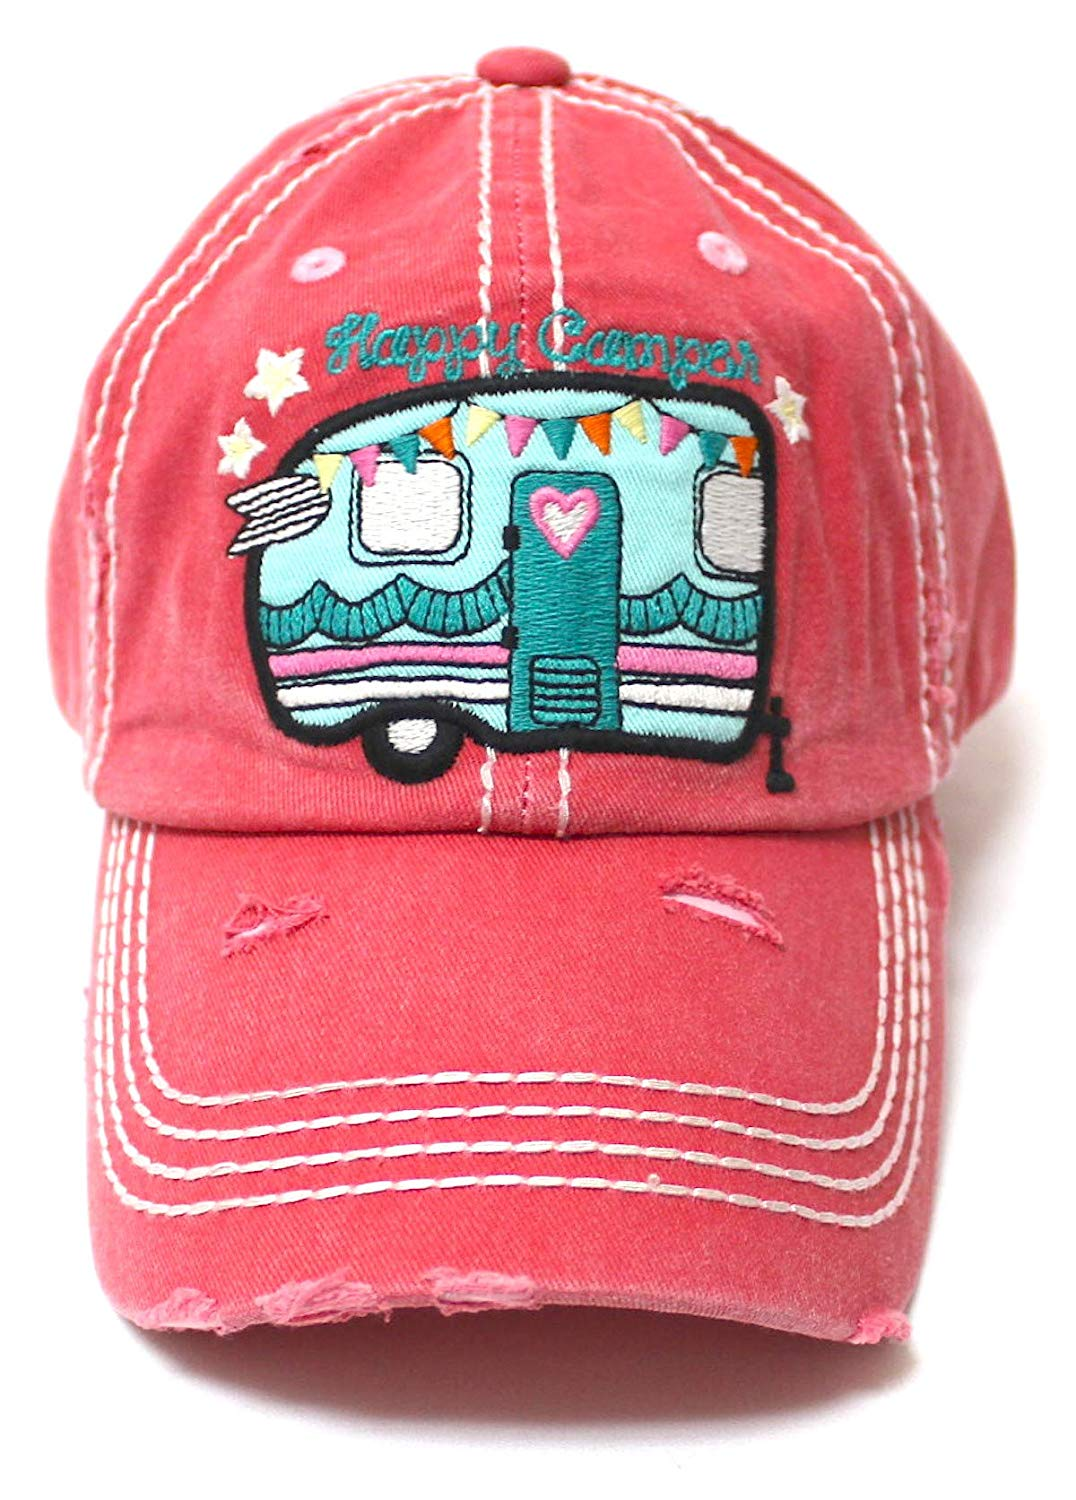 Camping Ballcap Happy Camper RV Truck, Hearts & Stars Patch Embroidery Hat, Rose Pink - Caps 'N Vintage